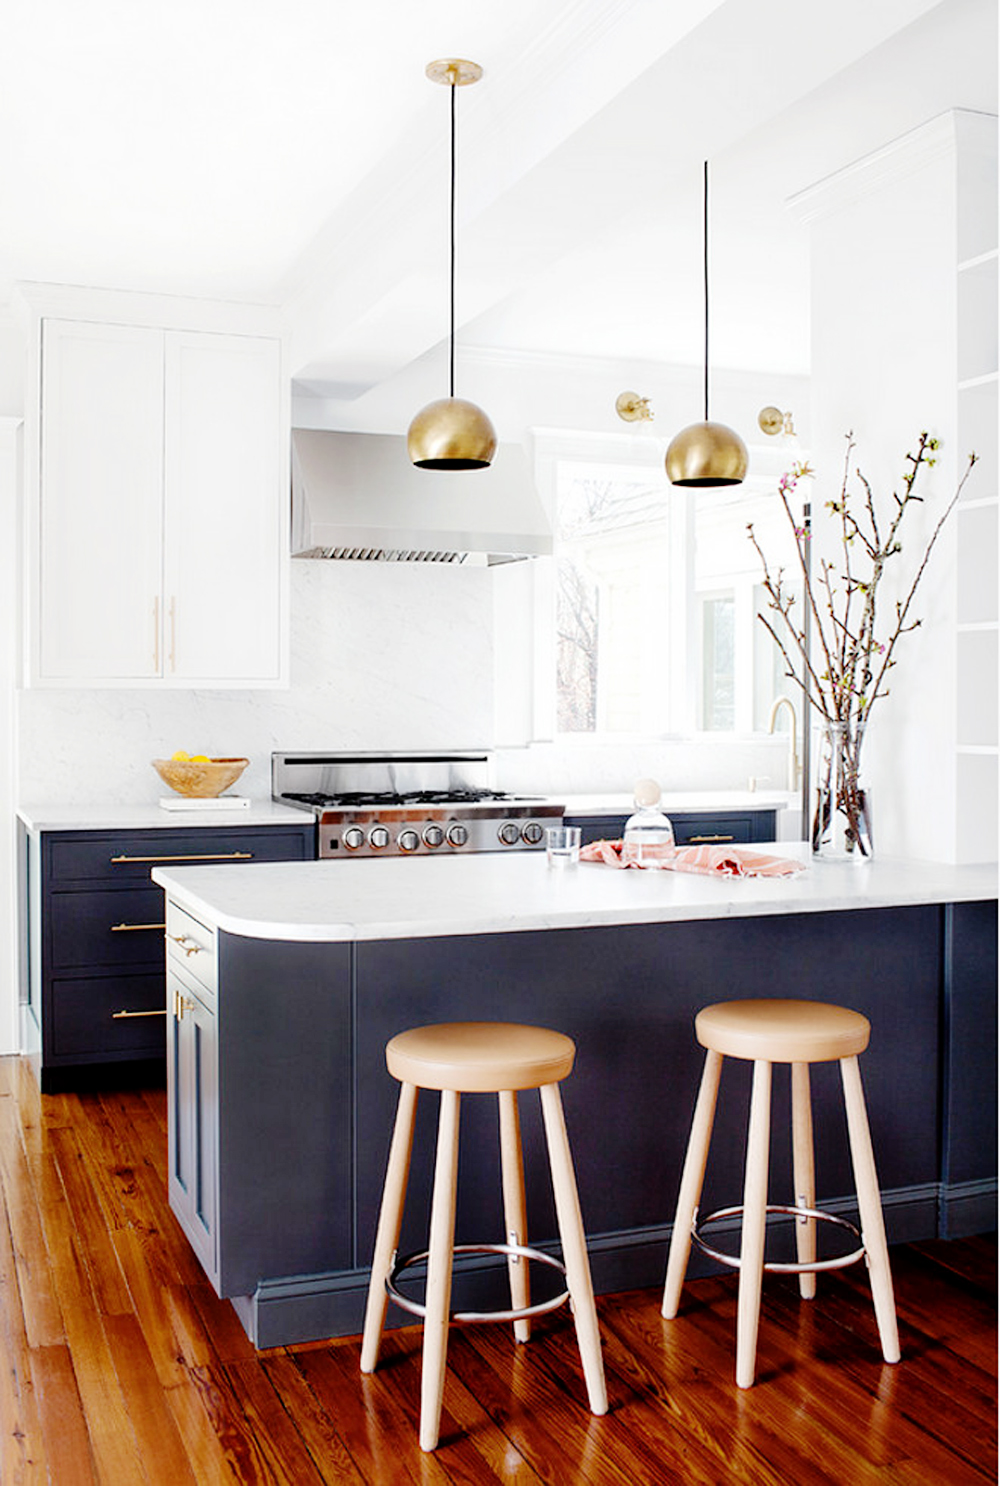 twotoned3 - THE TWO TONE KITCHEN by popular home design blogger E. INTERIORS